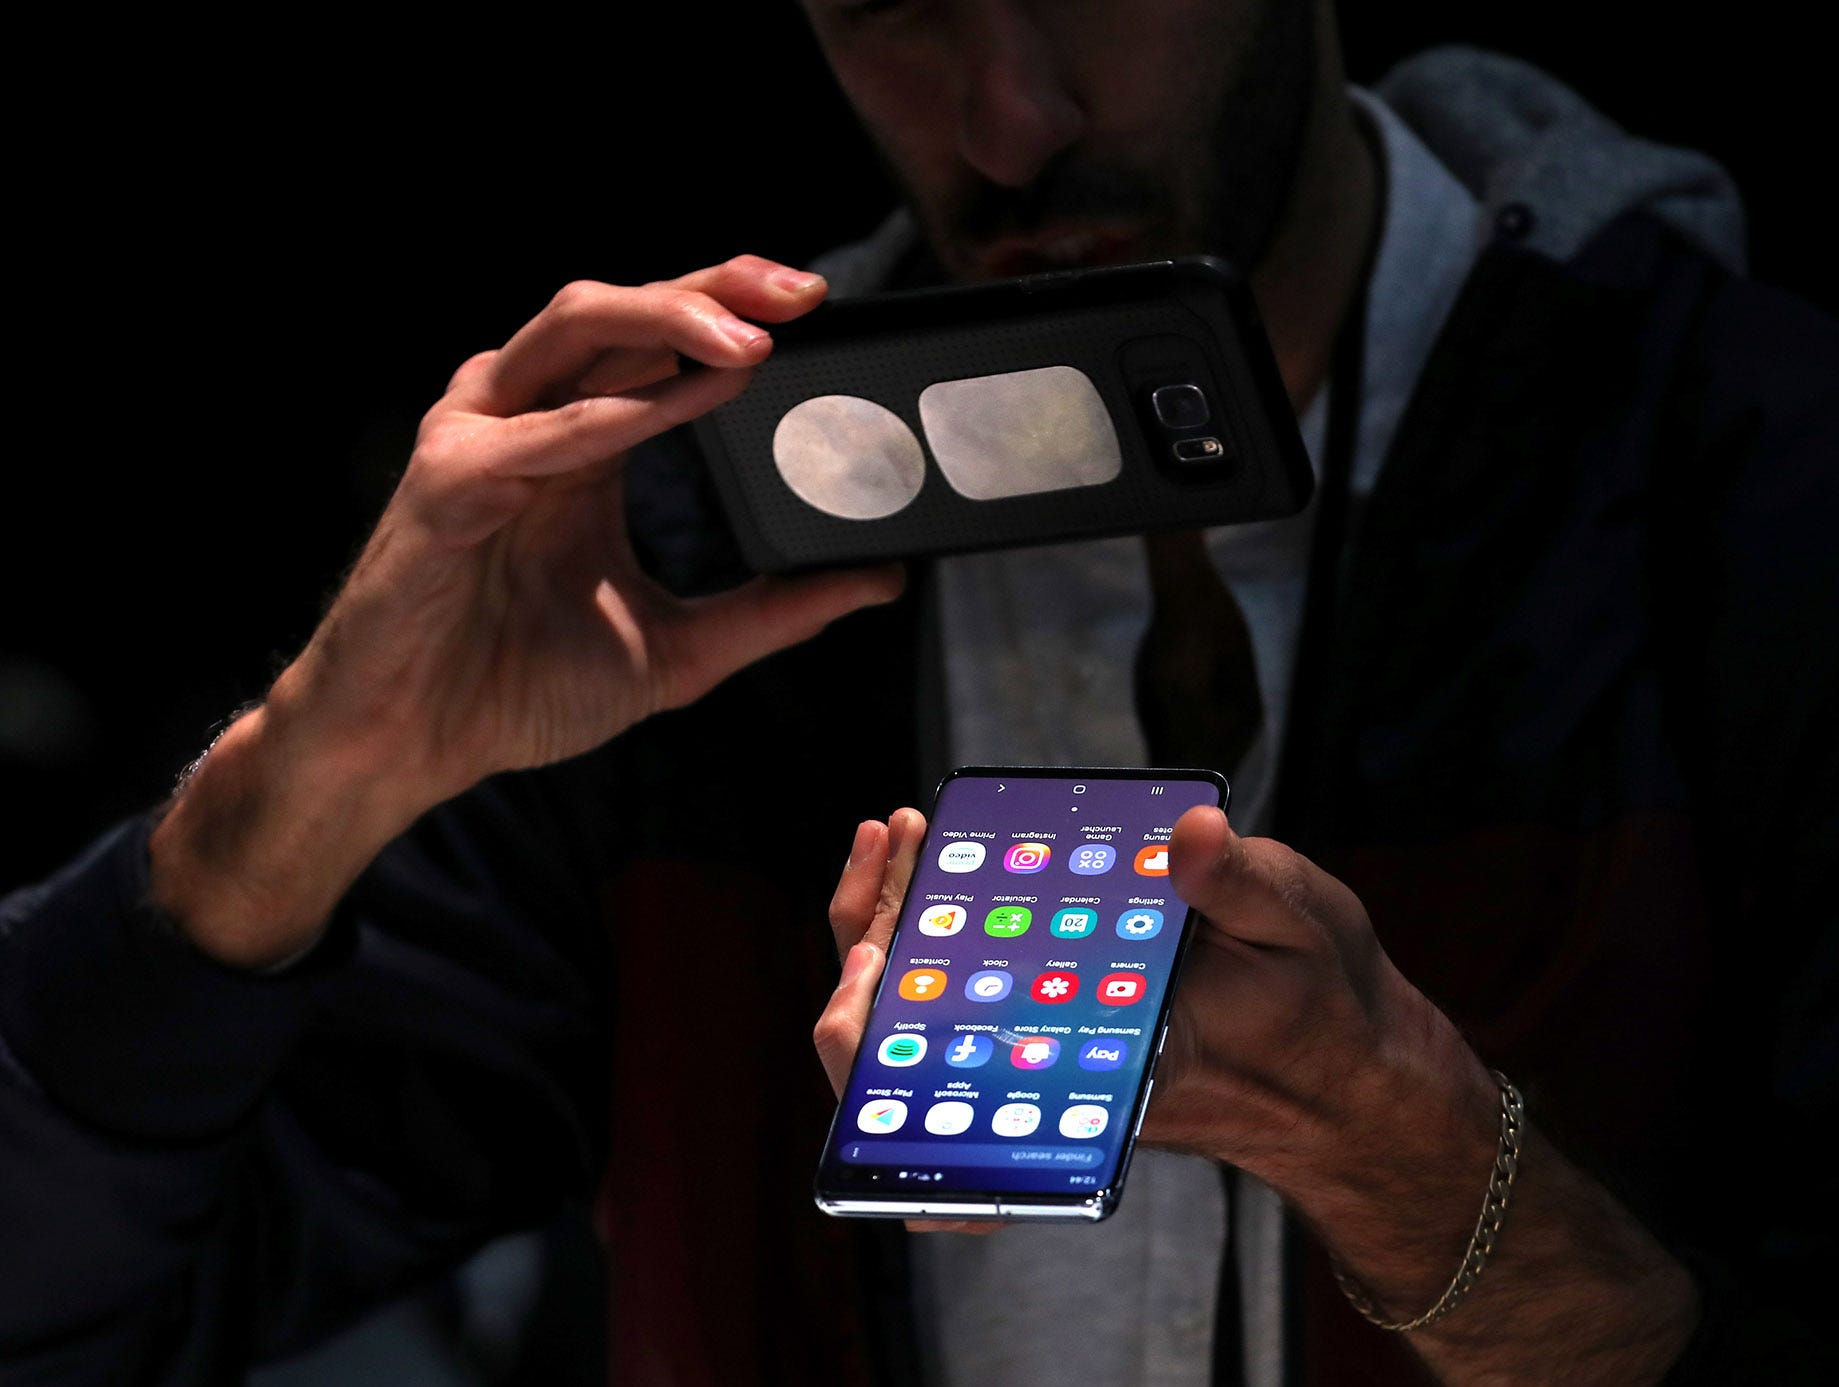 An attendee looks at a new Samsung Galaxy S10 smartphone during the Samsung Unpacked event on Feb. 20, 2019 in San Francisco, Calif.